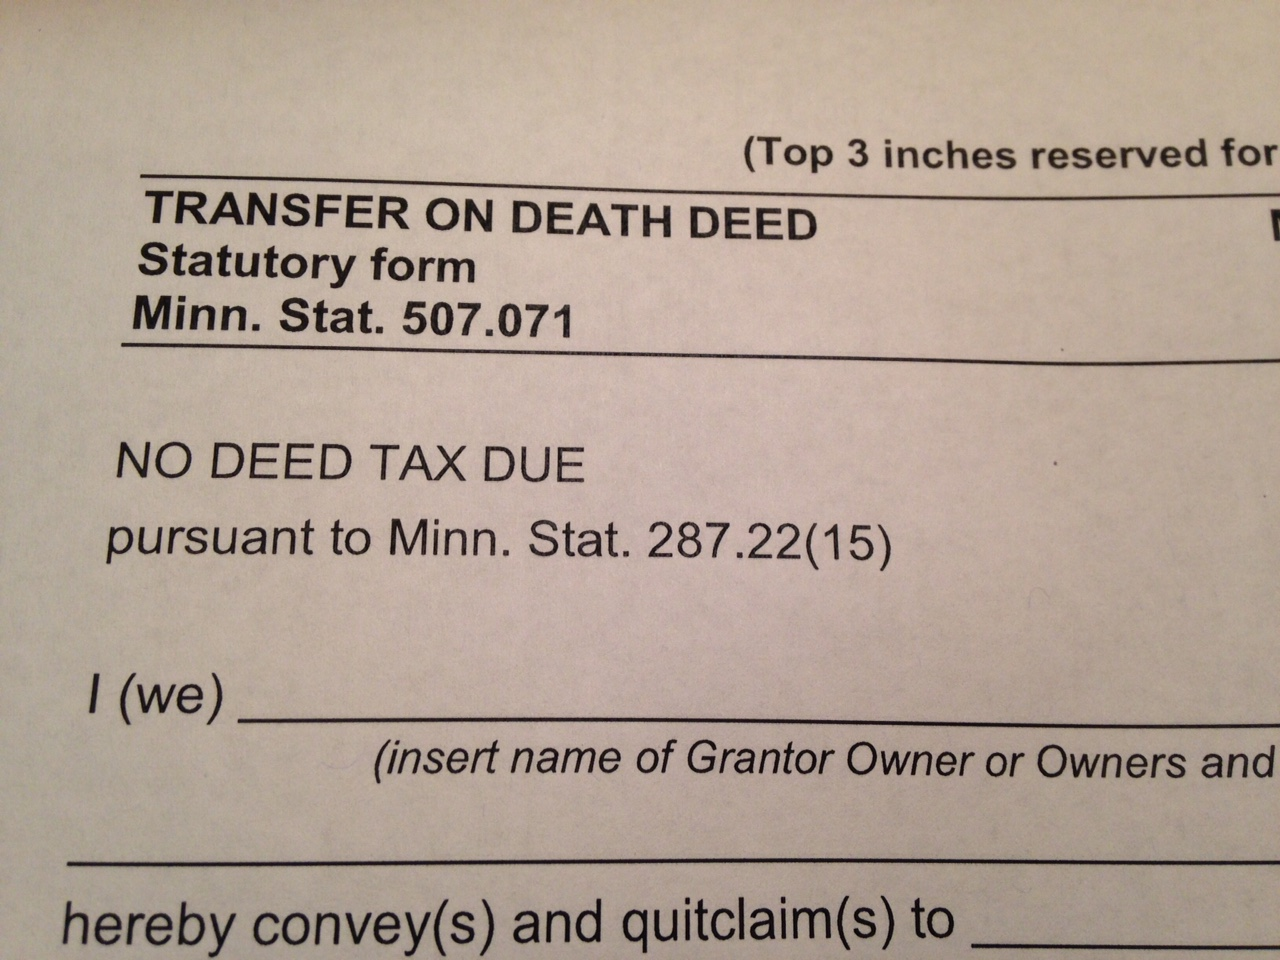 Transfer on Death Deed - Minnesota Form for a TODD